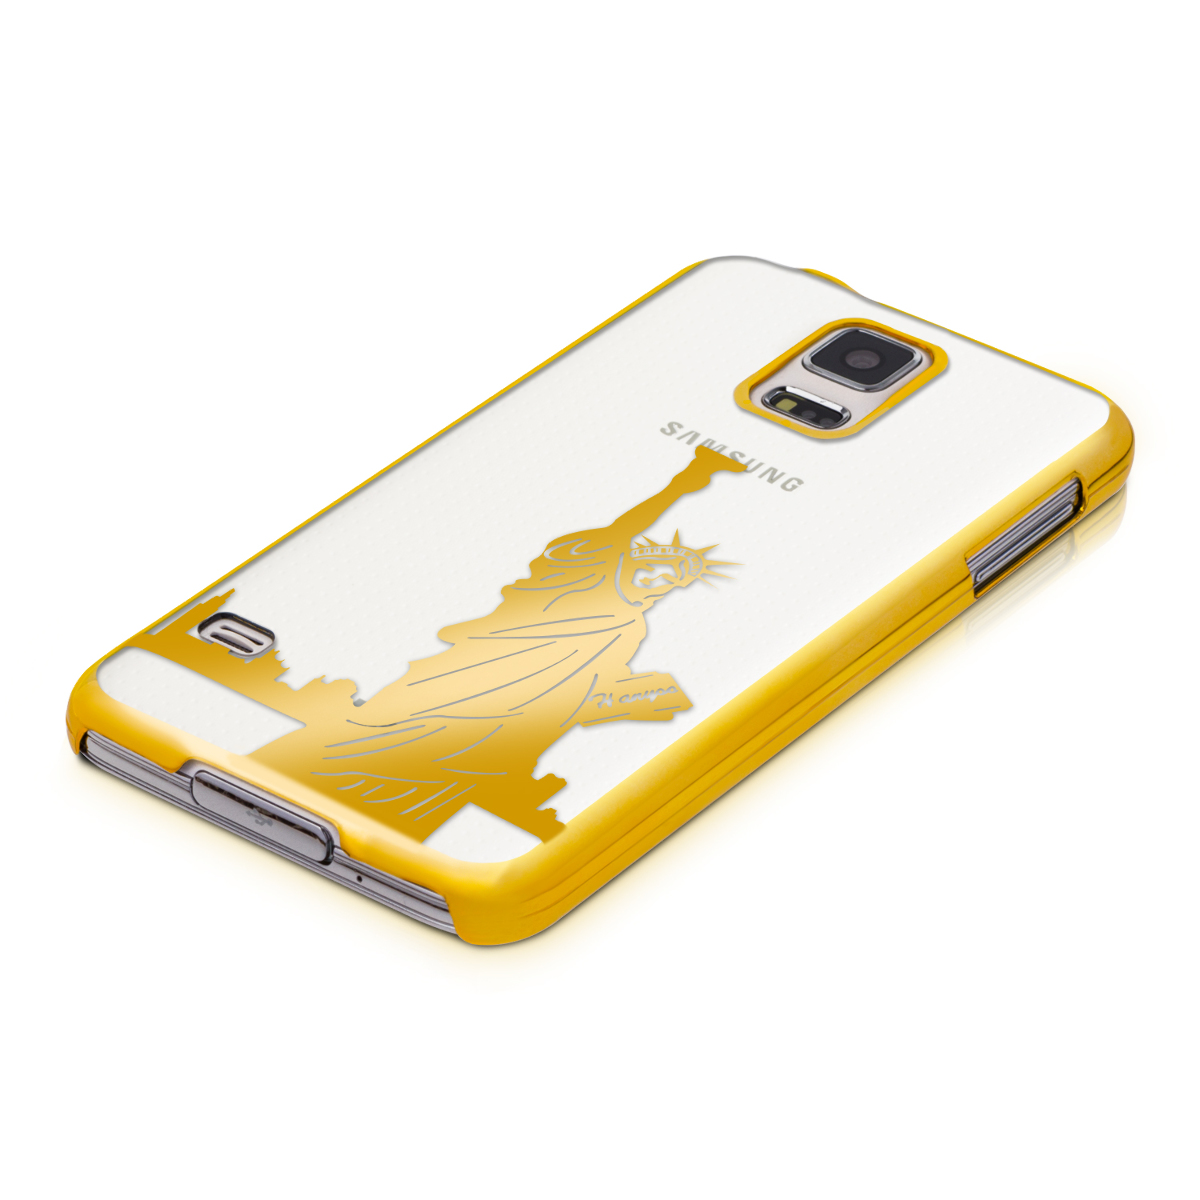 HARD-CASE-FUR-SAMSUNG-GALAXY-S5-G900-FEE-COVER-SCHUTZ-HULLE-BUMPER-HANDY-SCHALE